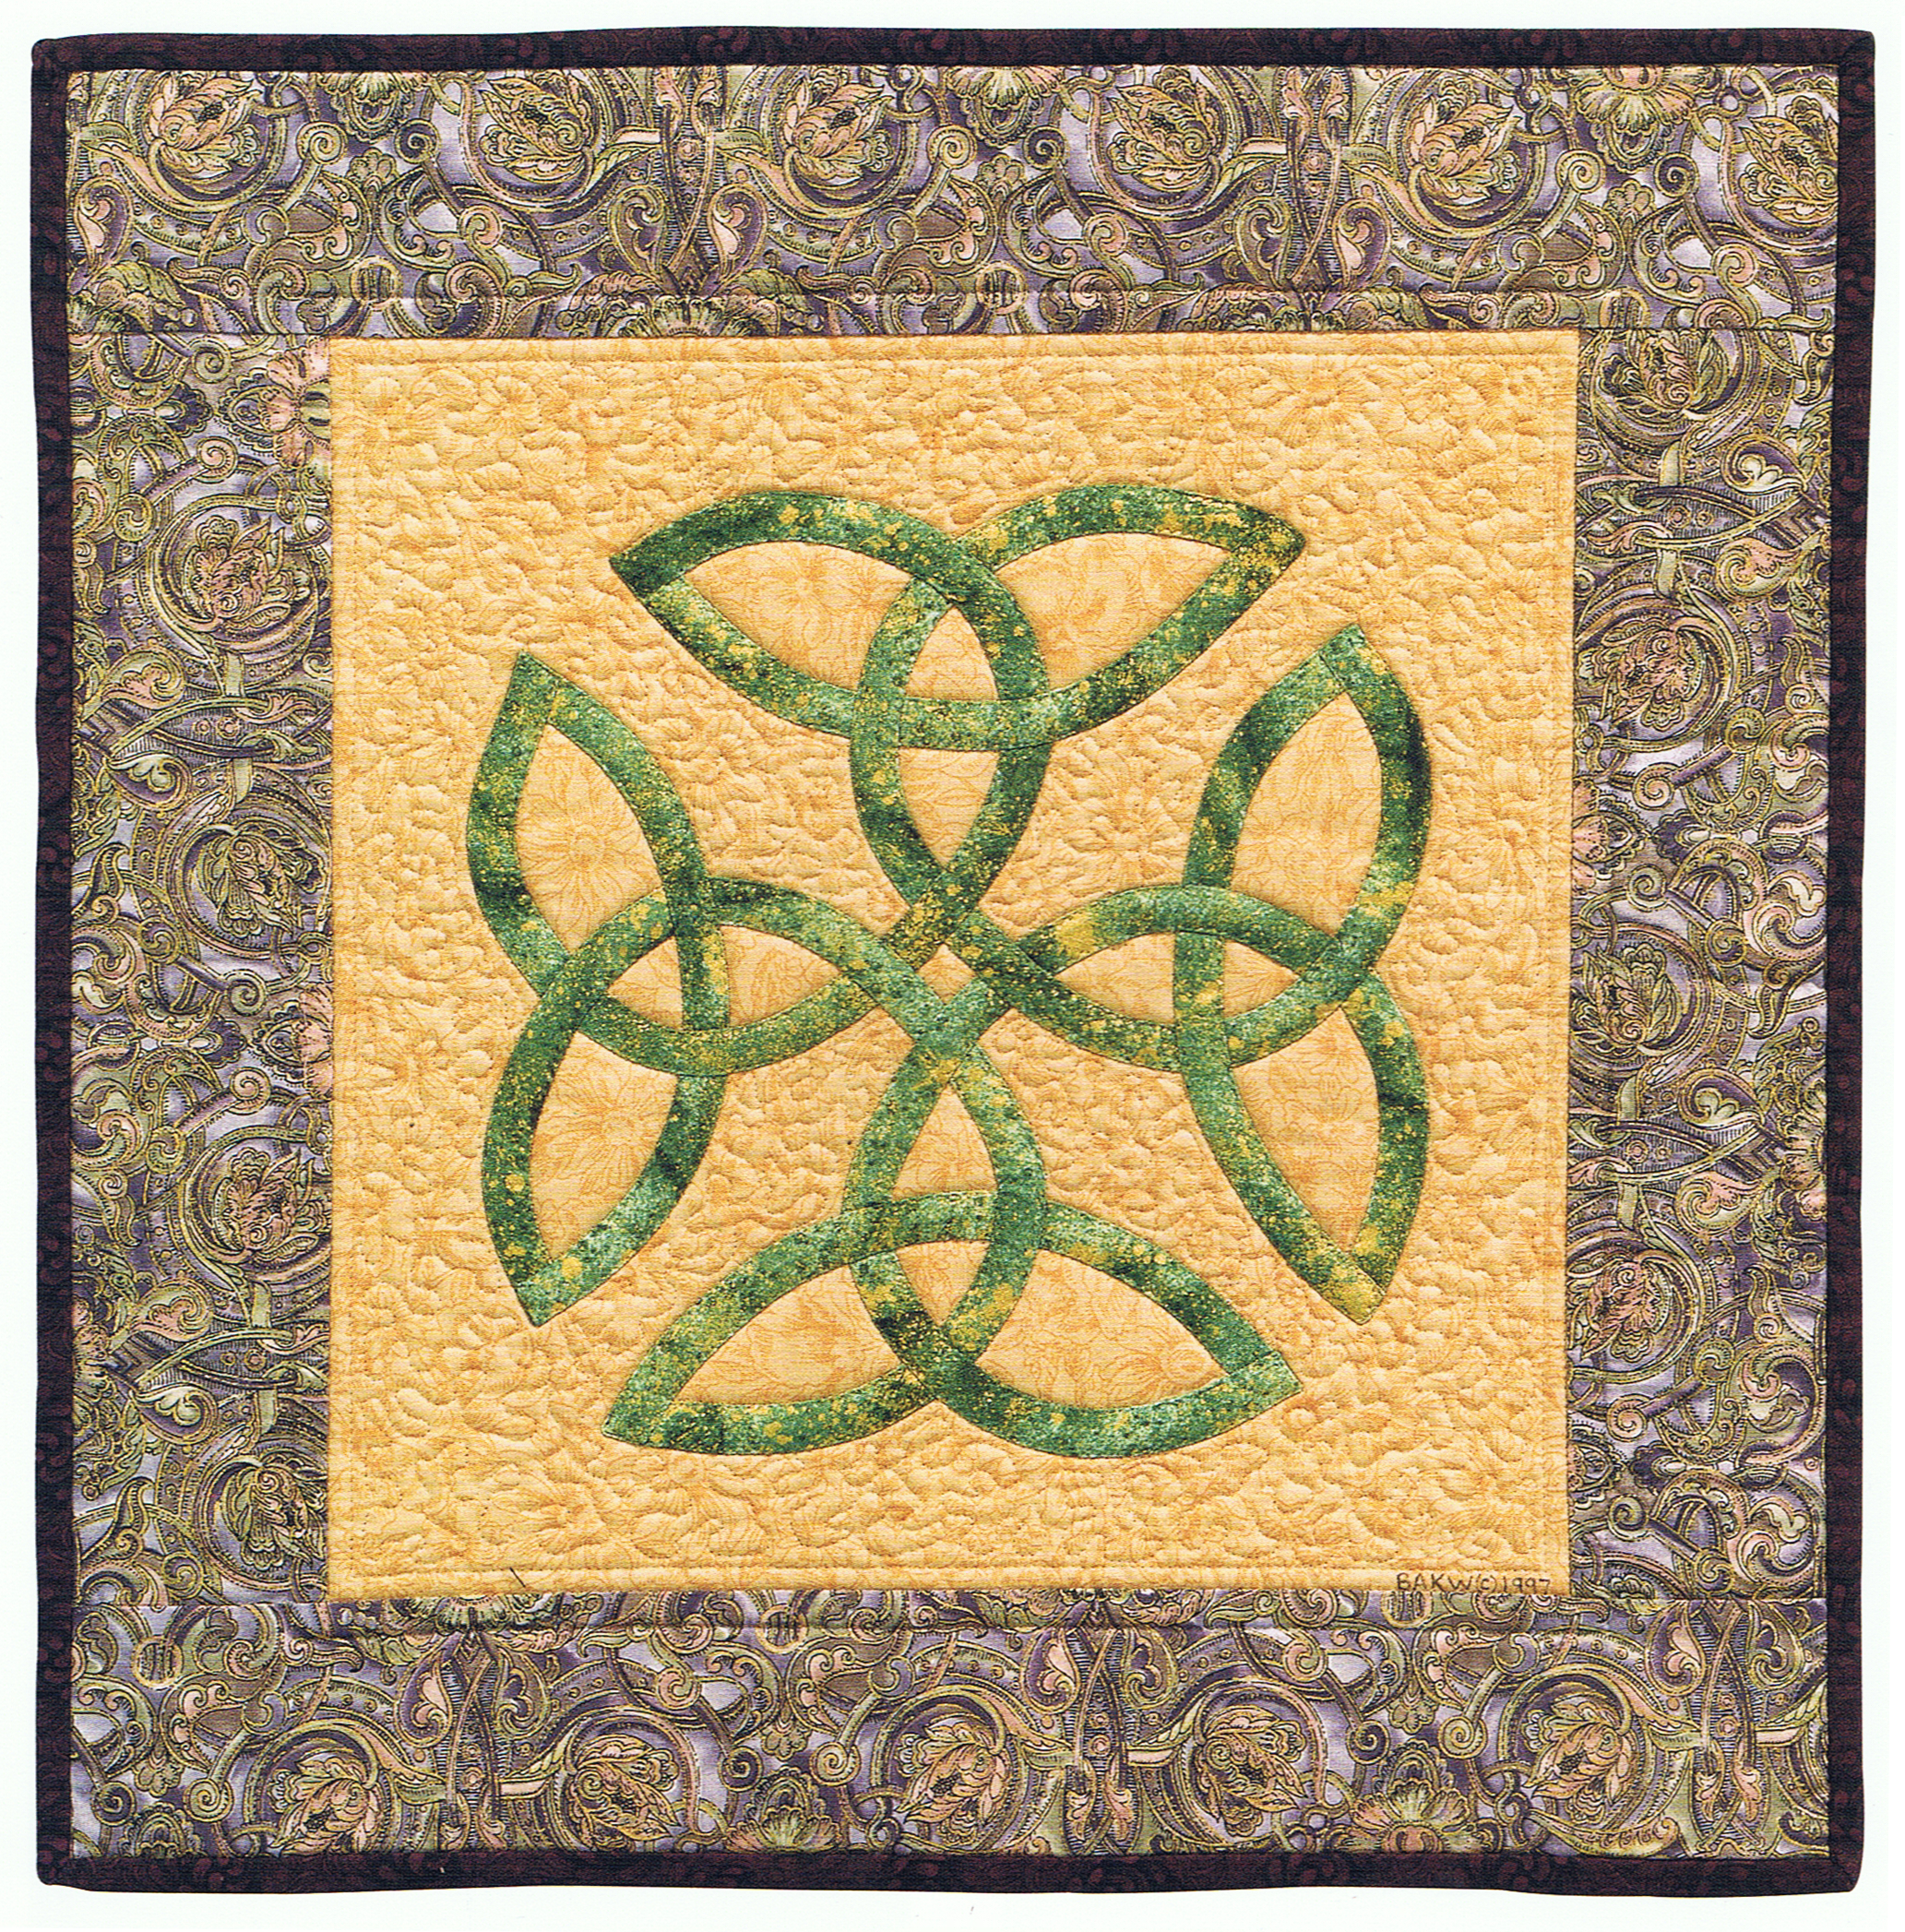 Beth Ann Williams / Contemporary Quilting and Fiber Art